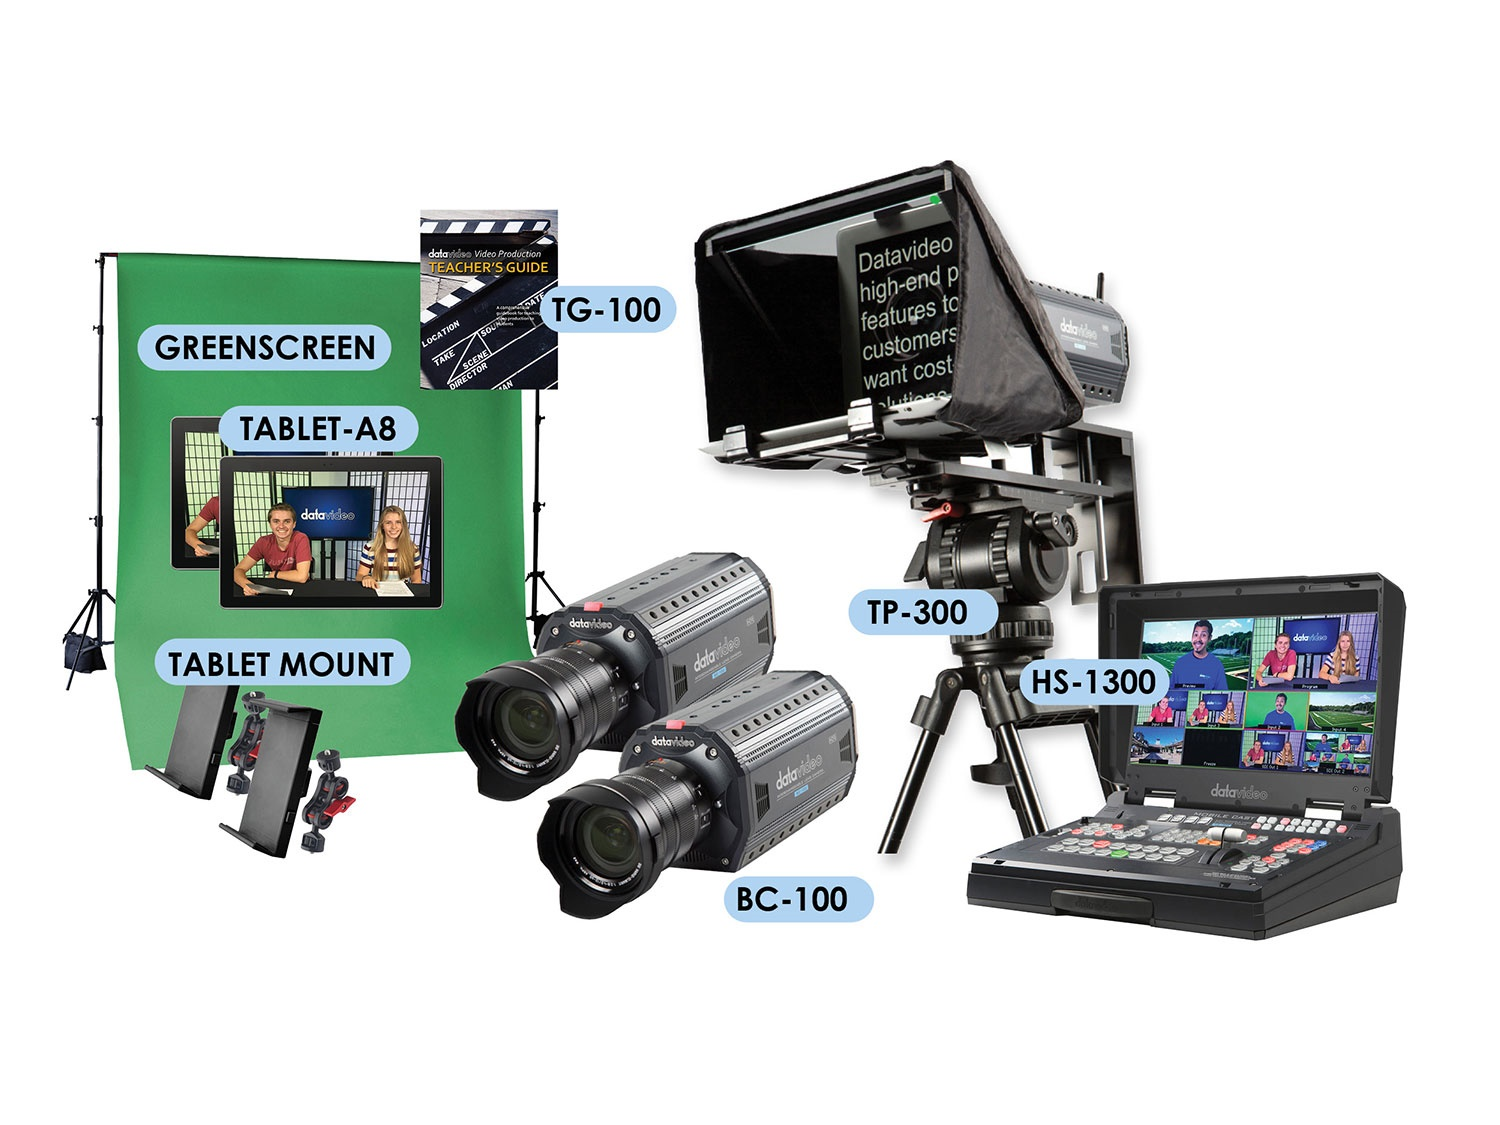 EPB-1300CK K-12 Two-Camera Chromakey Video Production Studio by Datavideo